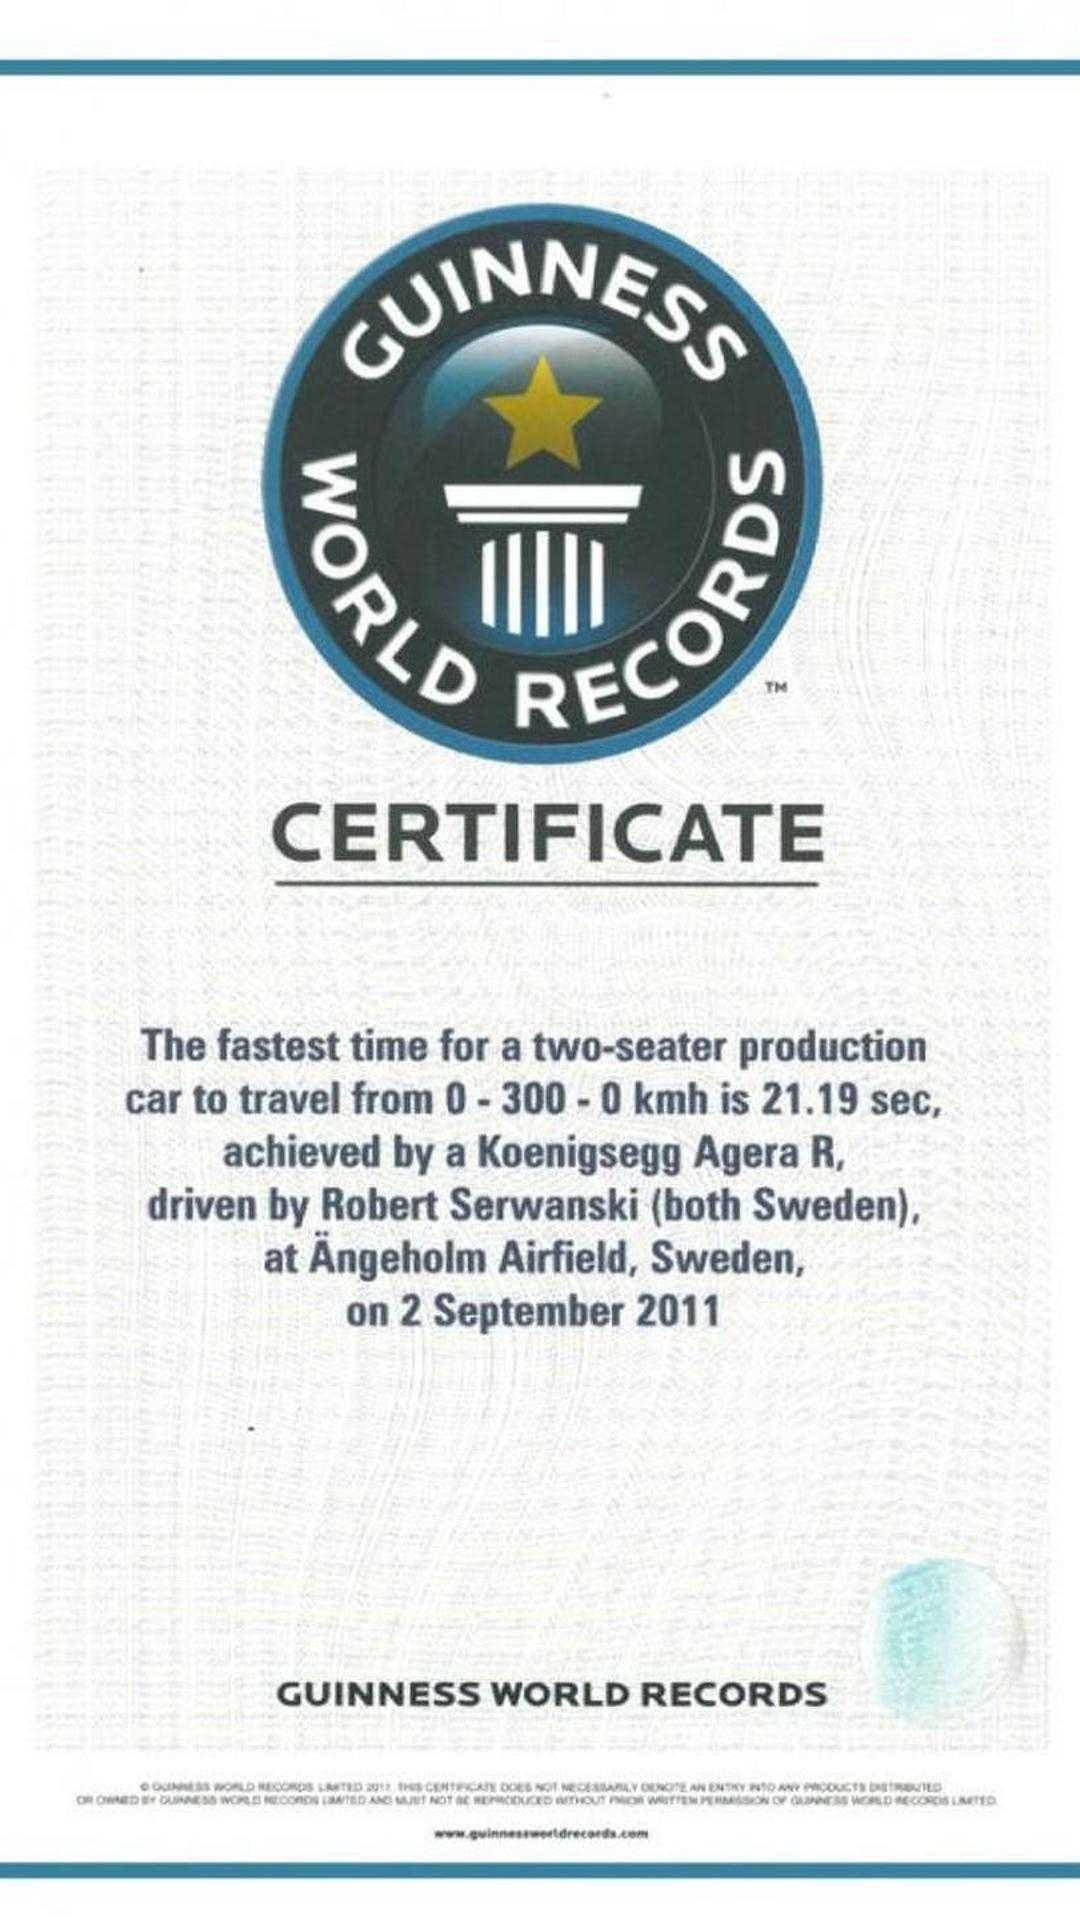 Koenigsegg Agera R Guiness World Record Certificate 30.11 With Regard To Guinness World Record Certificate Template